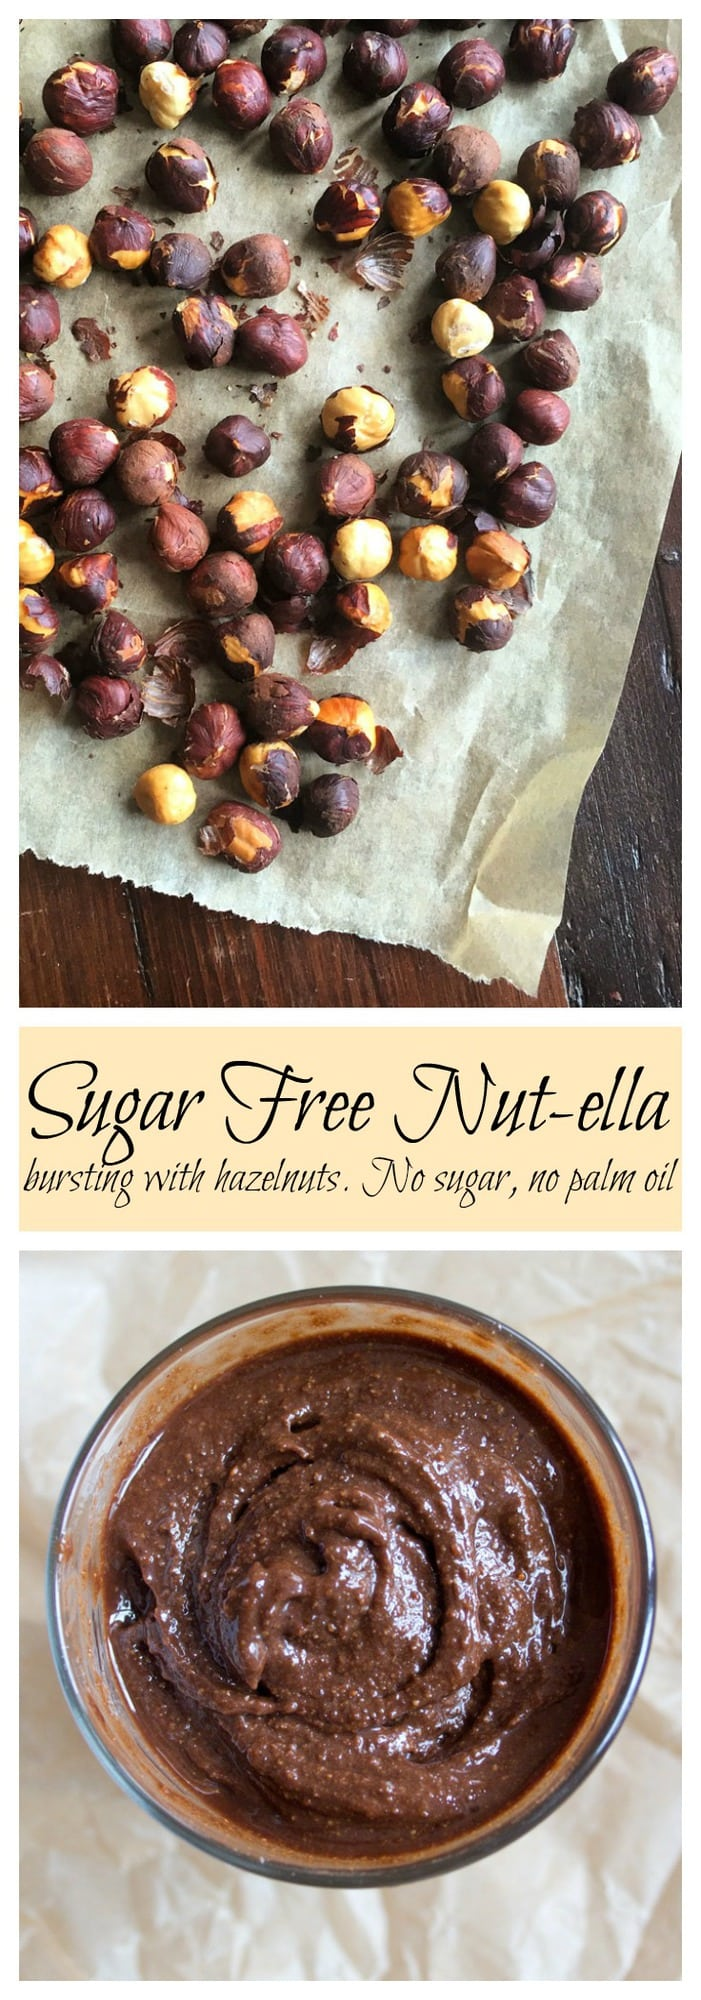 Nutty. Chocolatey. Irresistible. It is so easy to make homemade nut-ella! Check out this simple and delicious 3 step sugar free nutella recipe! #sugarfree #lowcarb